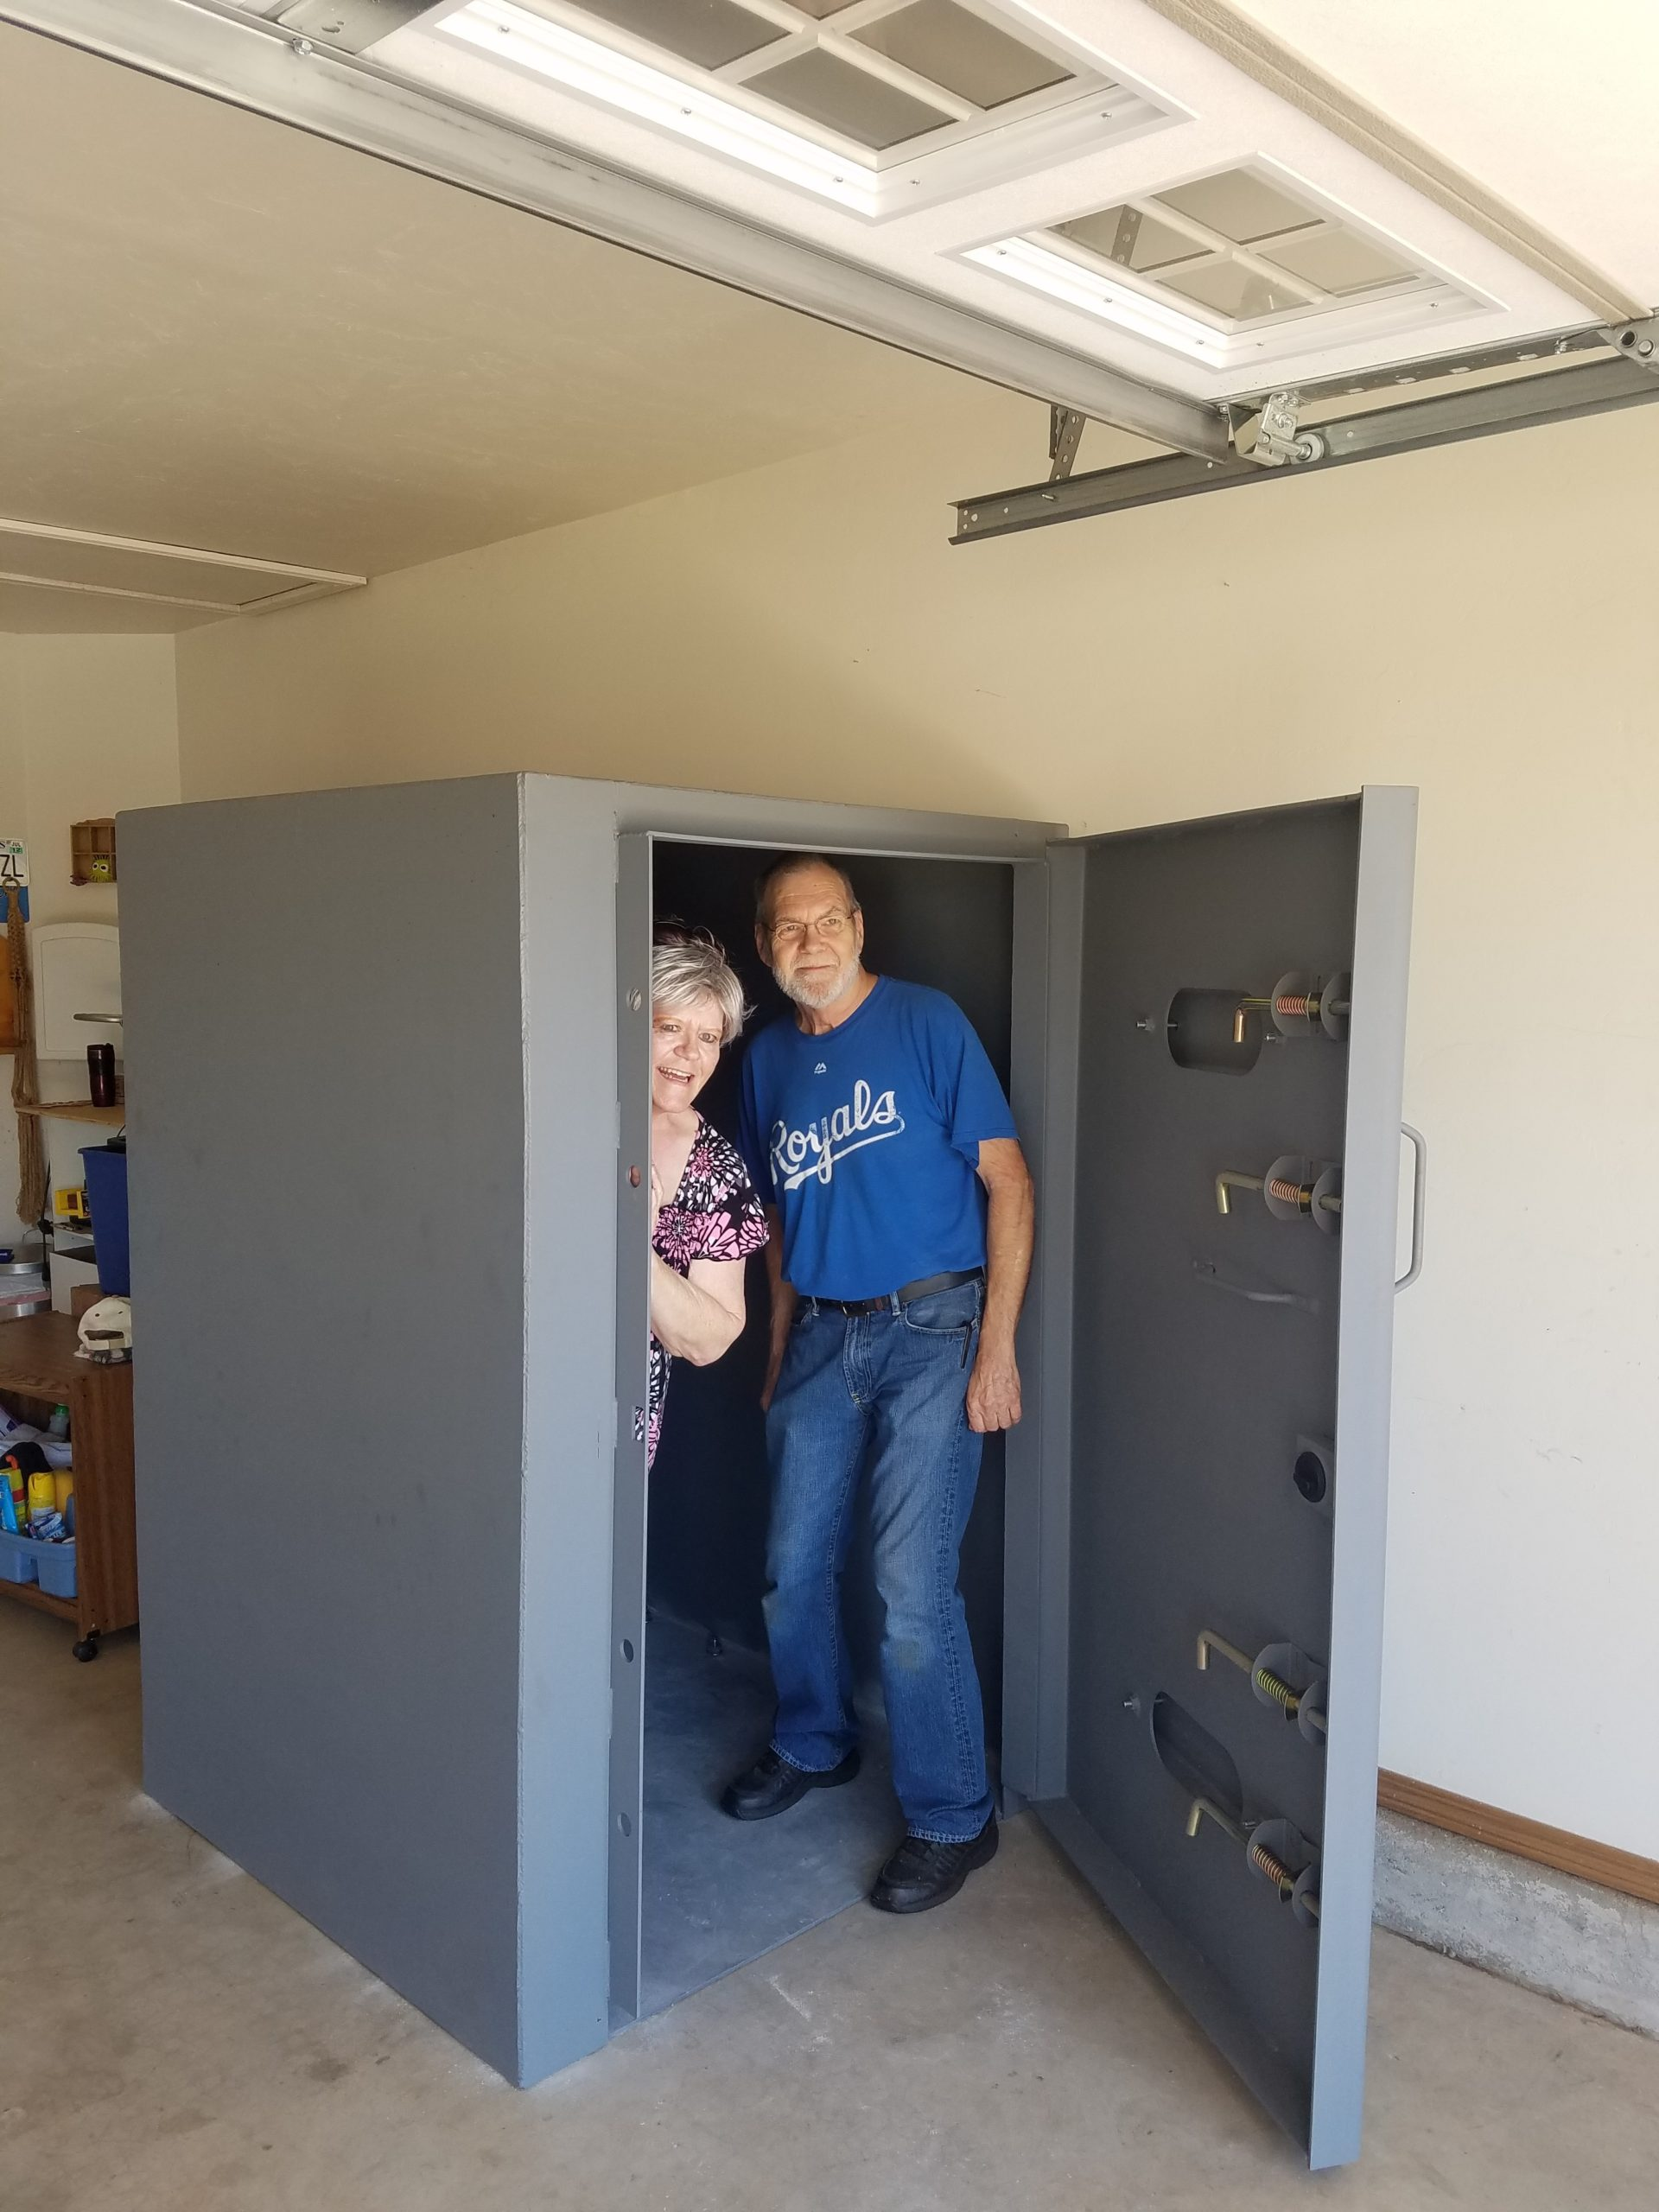 Older Adults Standing in an Aboveground Tornado Safe Room Installed in their Garage